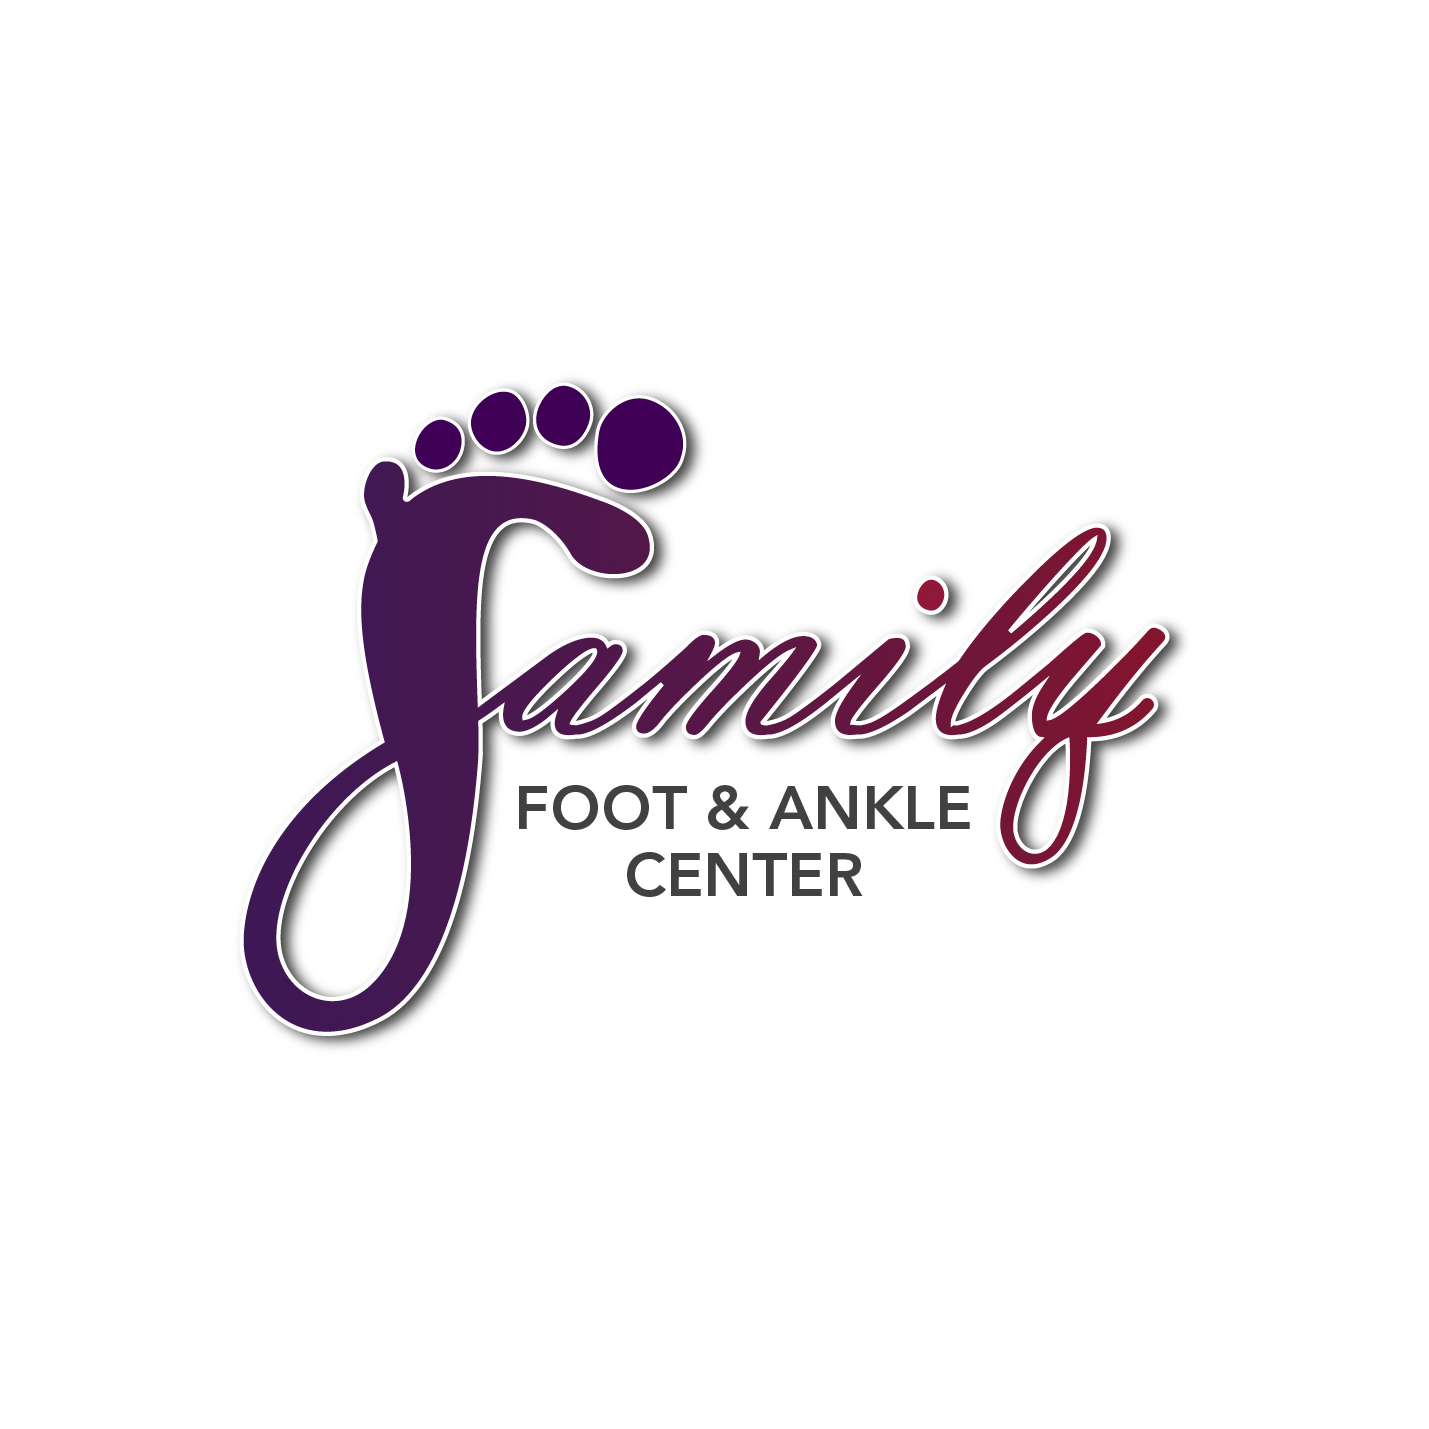 Family Foot & Ankle Center, Inc